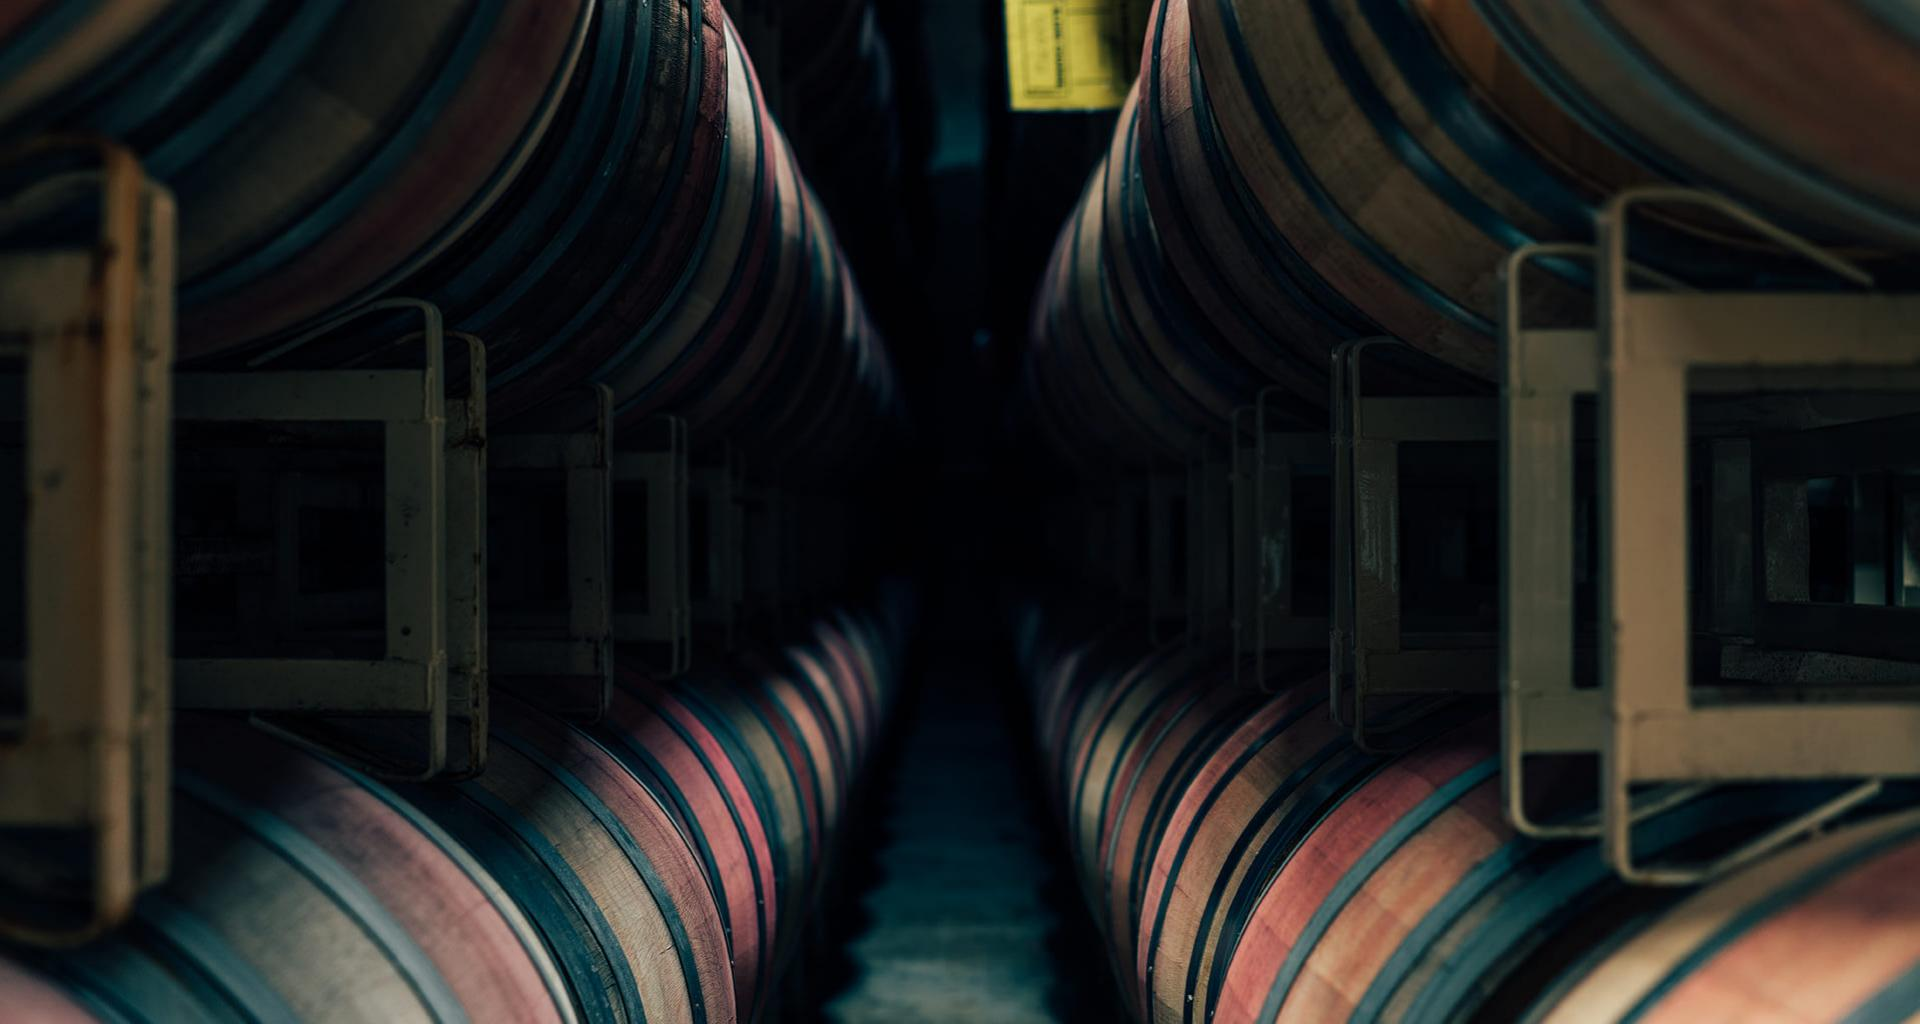 Murphy-Goode wine barrels